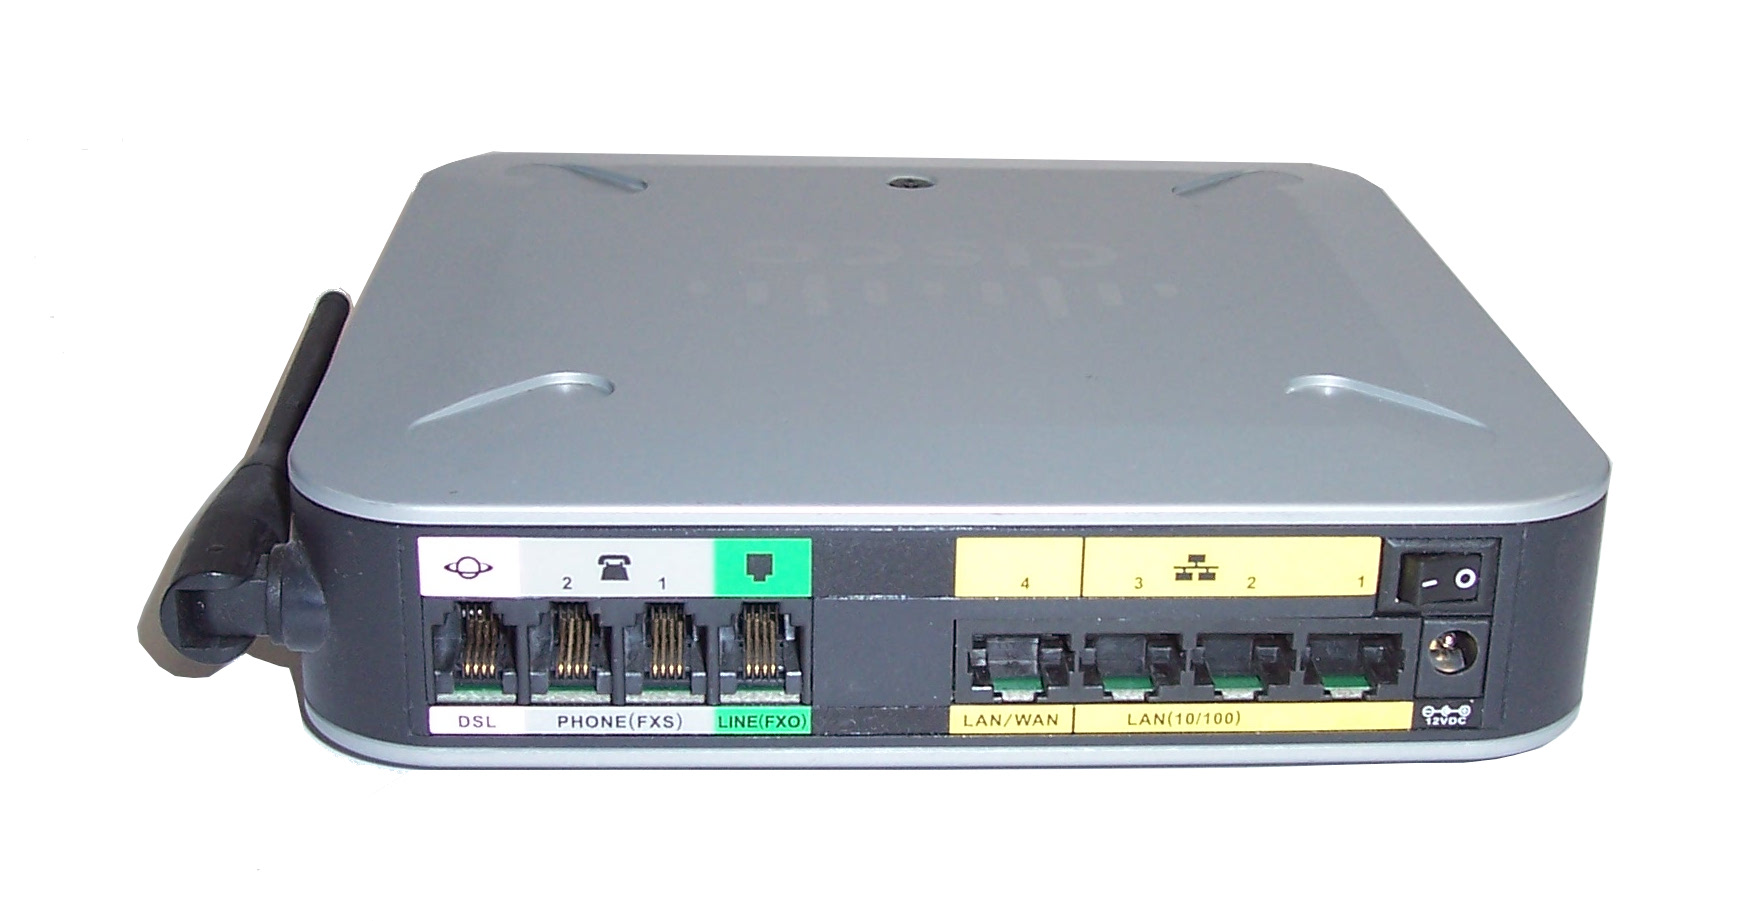 Cisco small business pro srp527w manual transmission